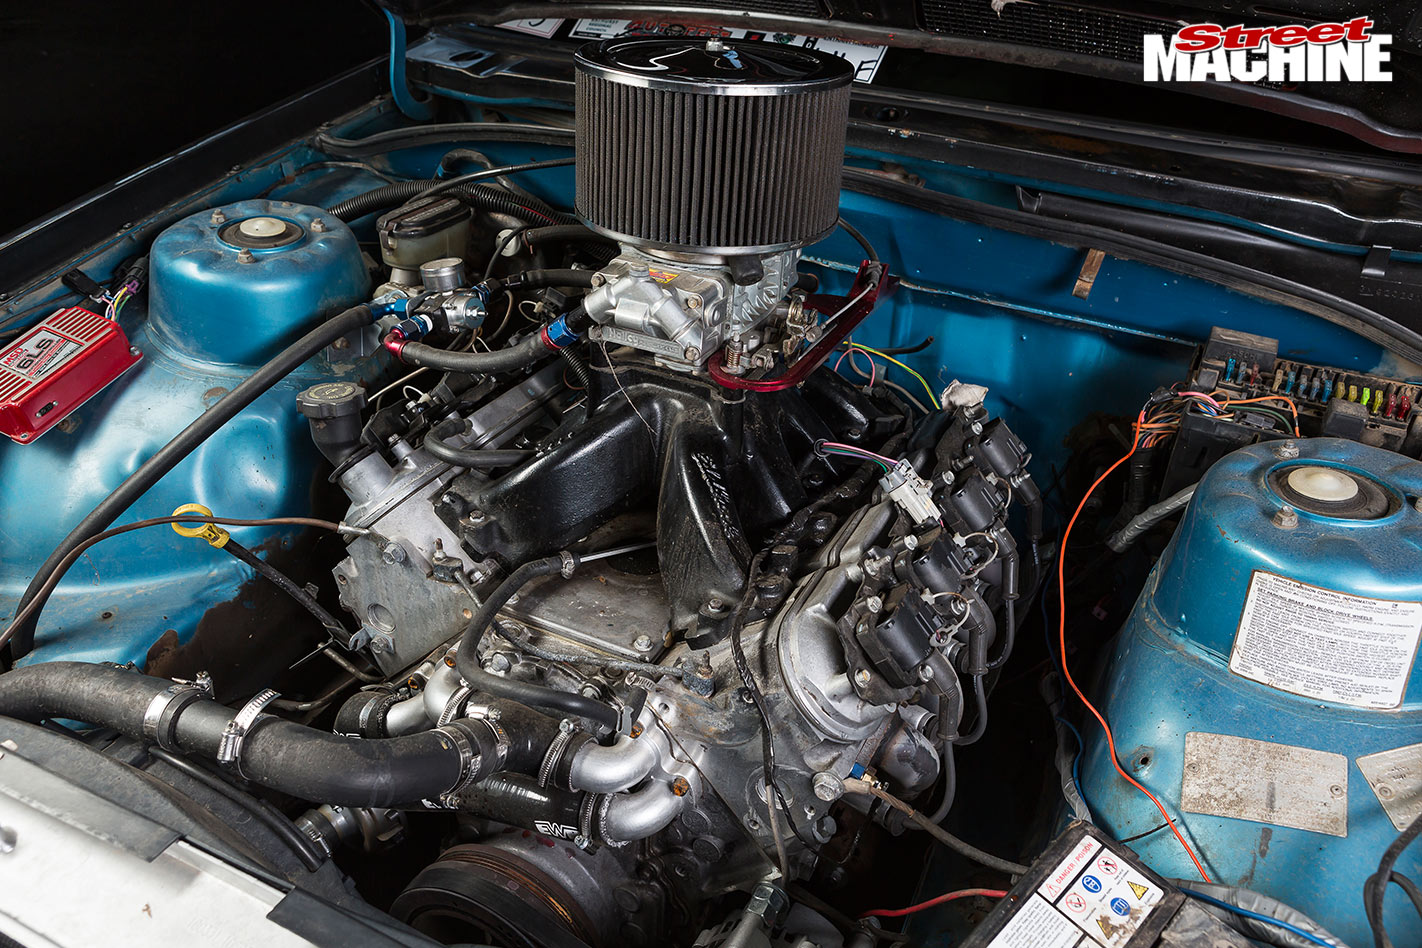 Holden VK Commodore engine